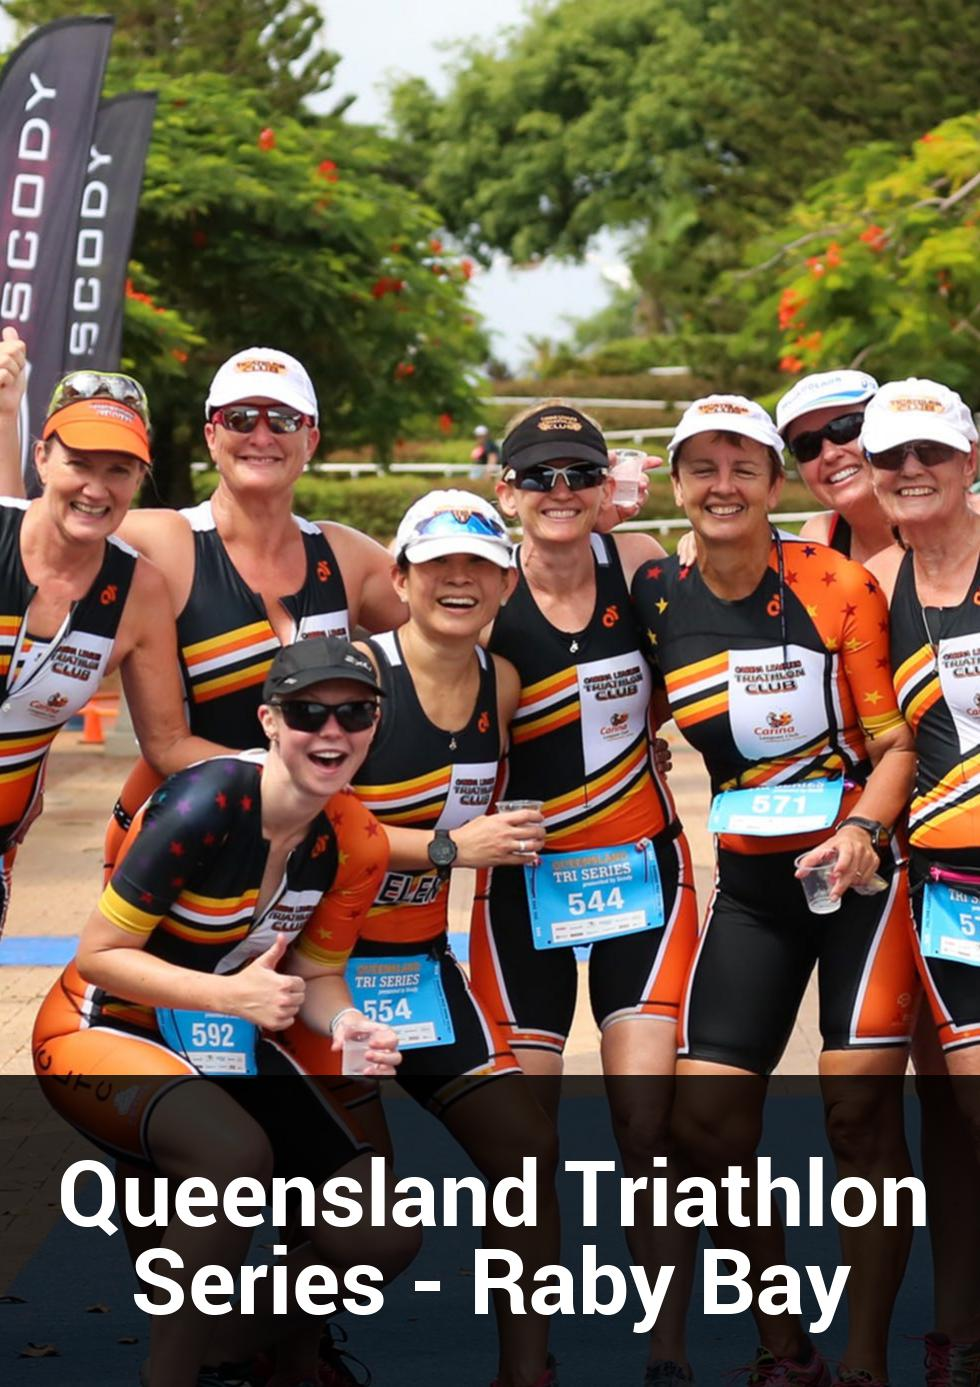 Queensland Triathlon Series - Raby Bay at Raby Bay Harbour Park